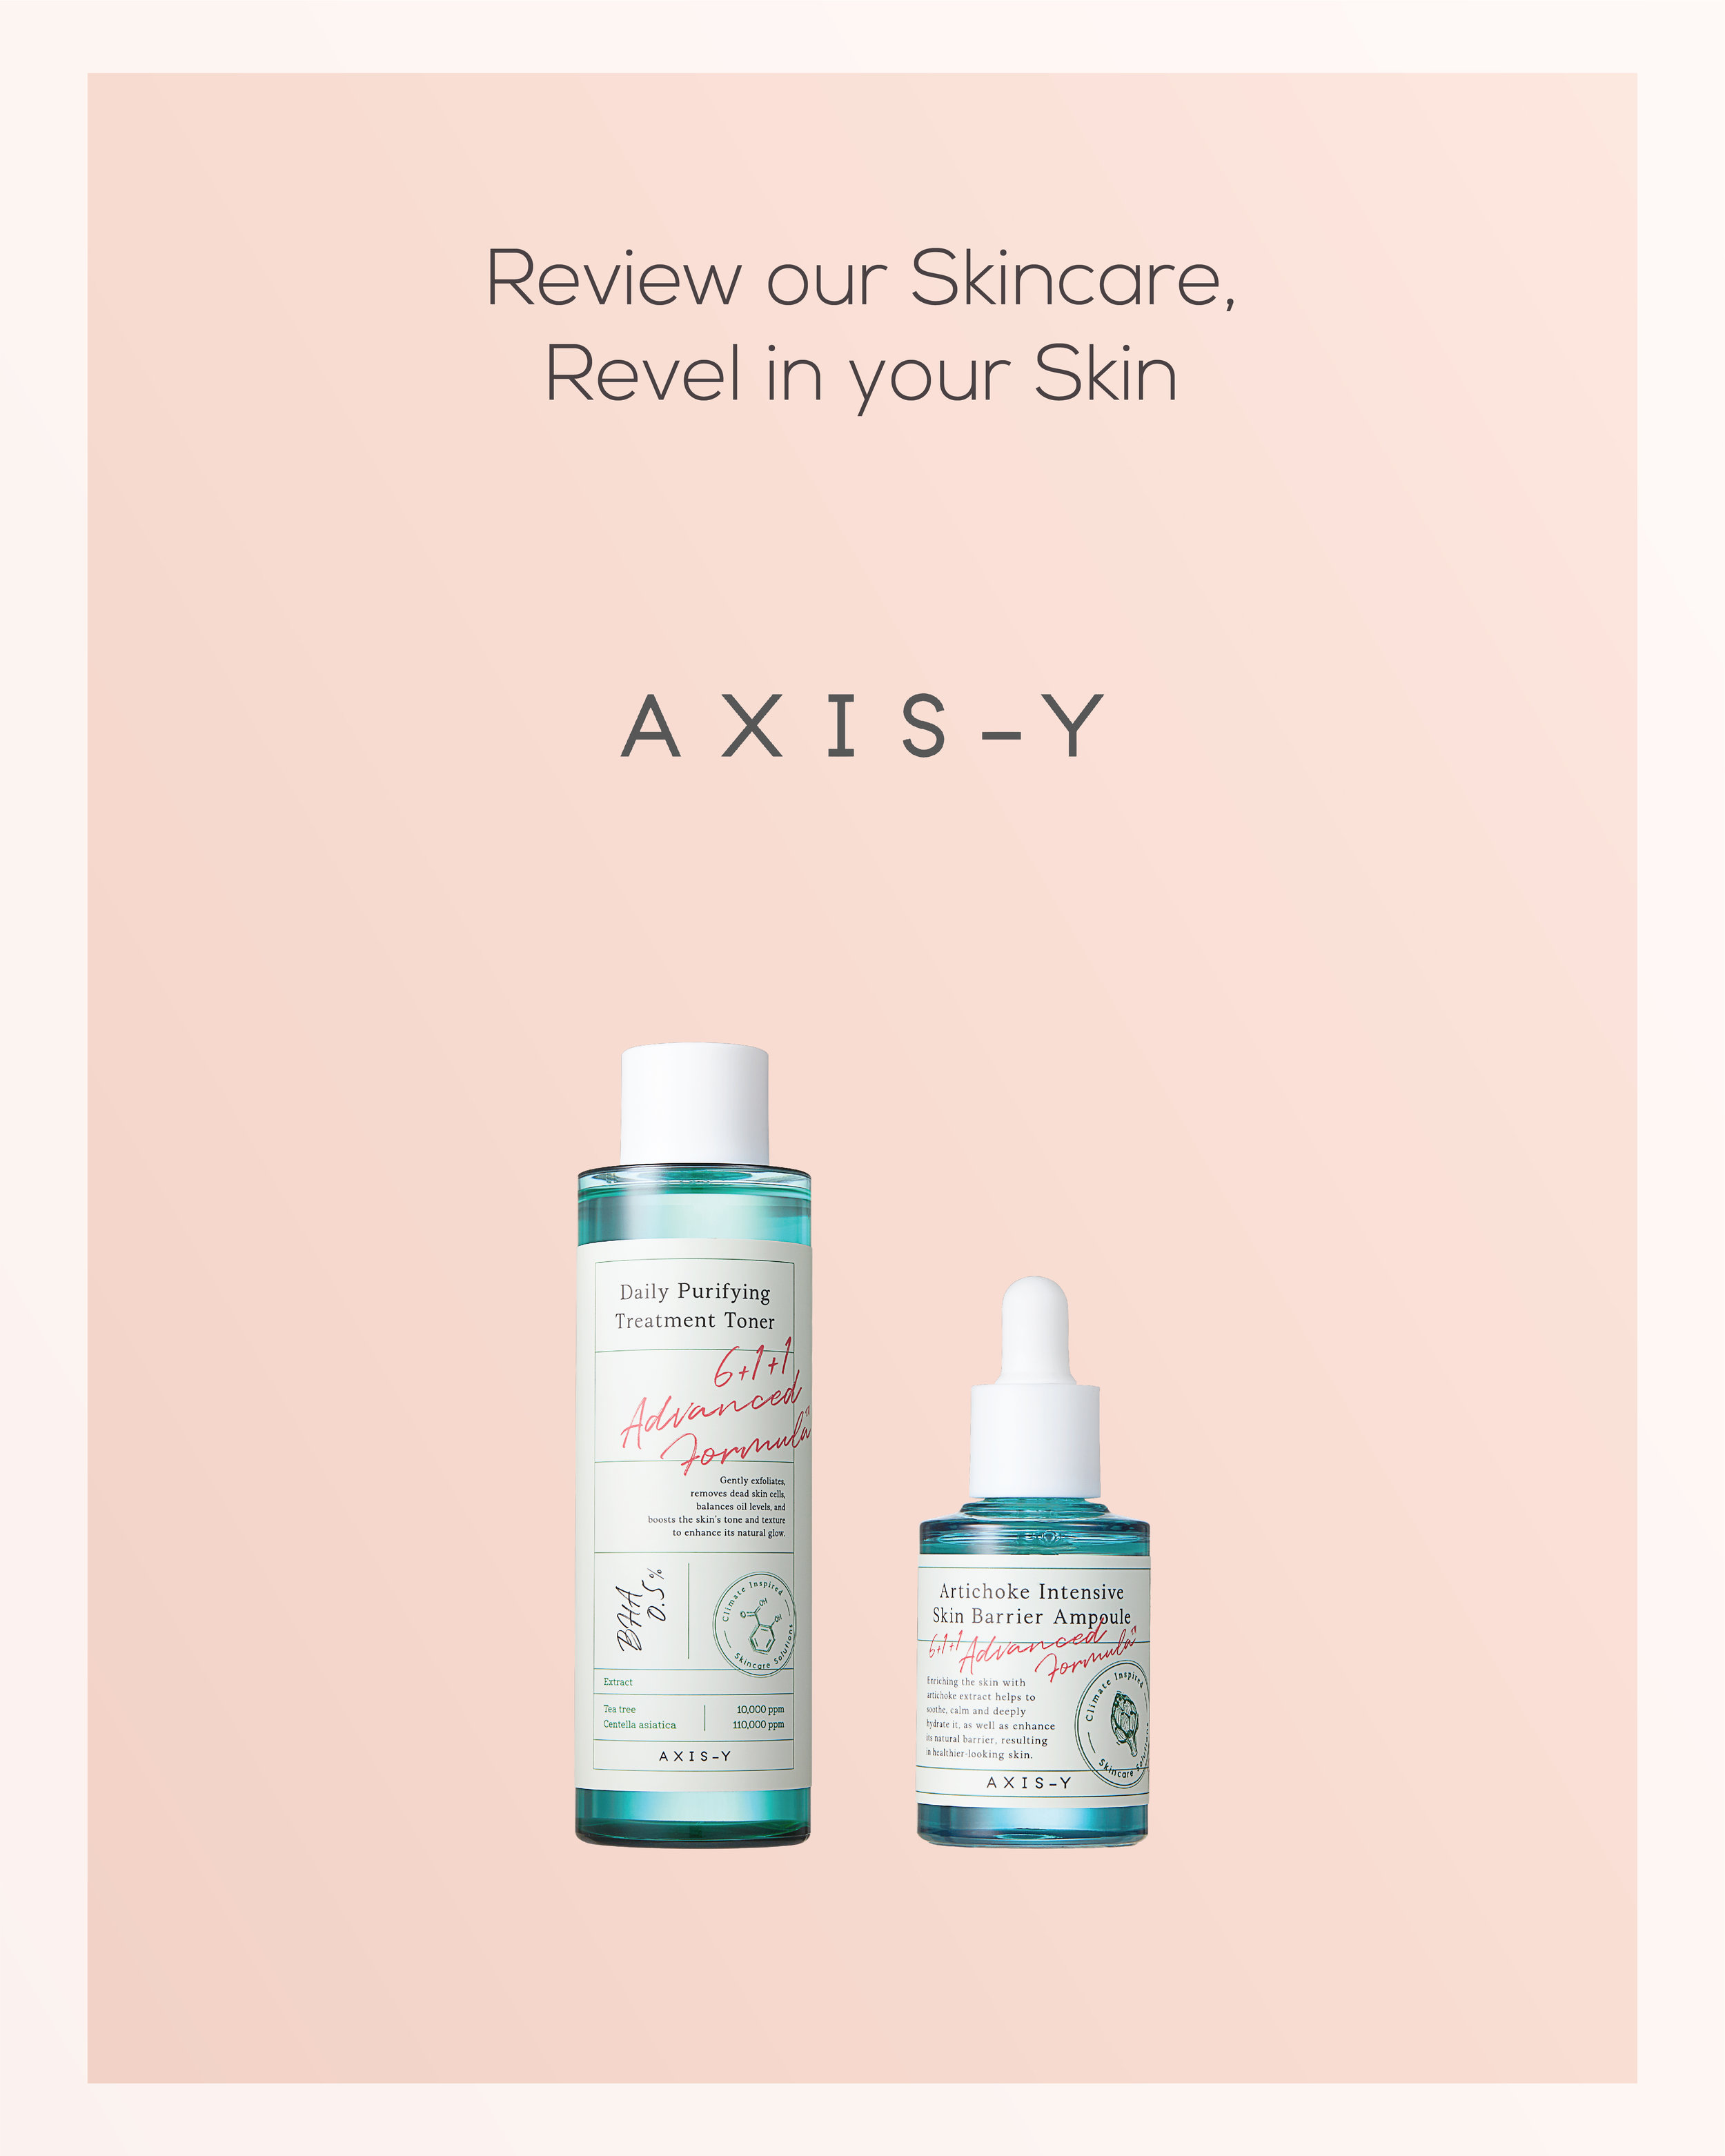 Review our skincare-02.jpg